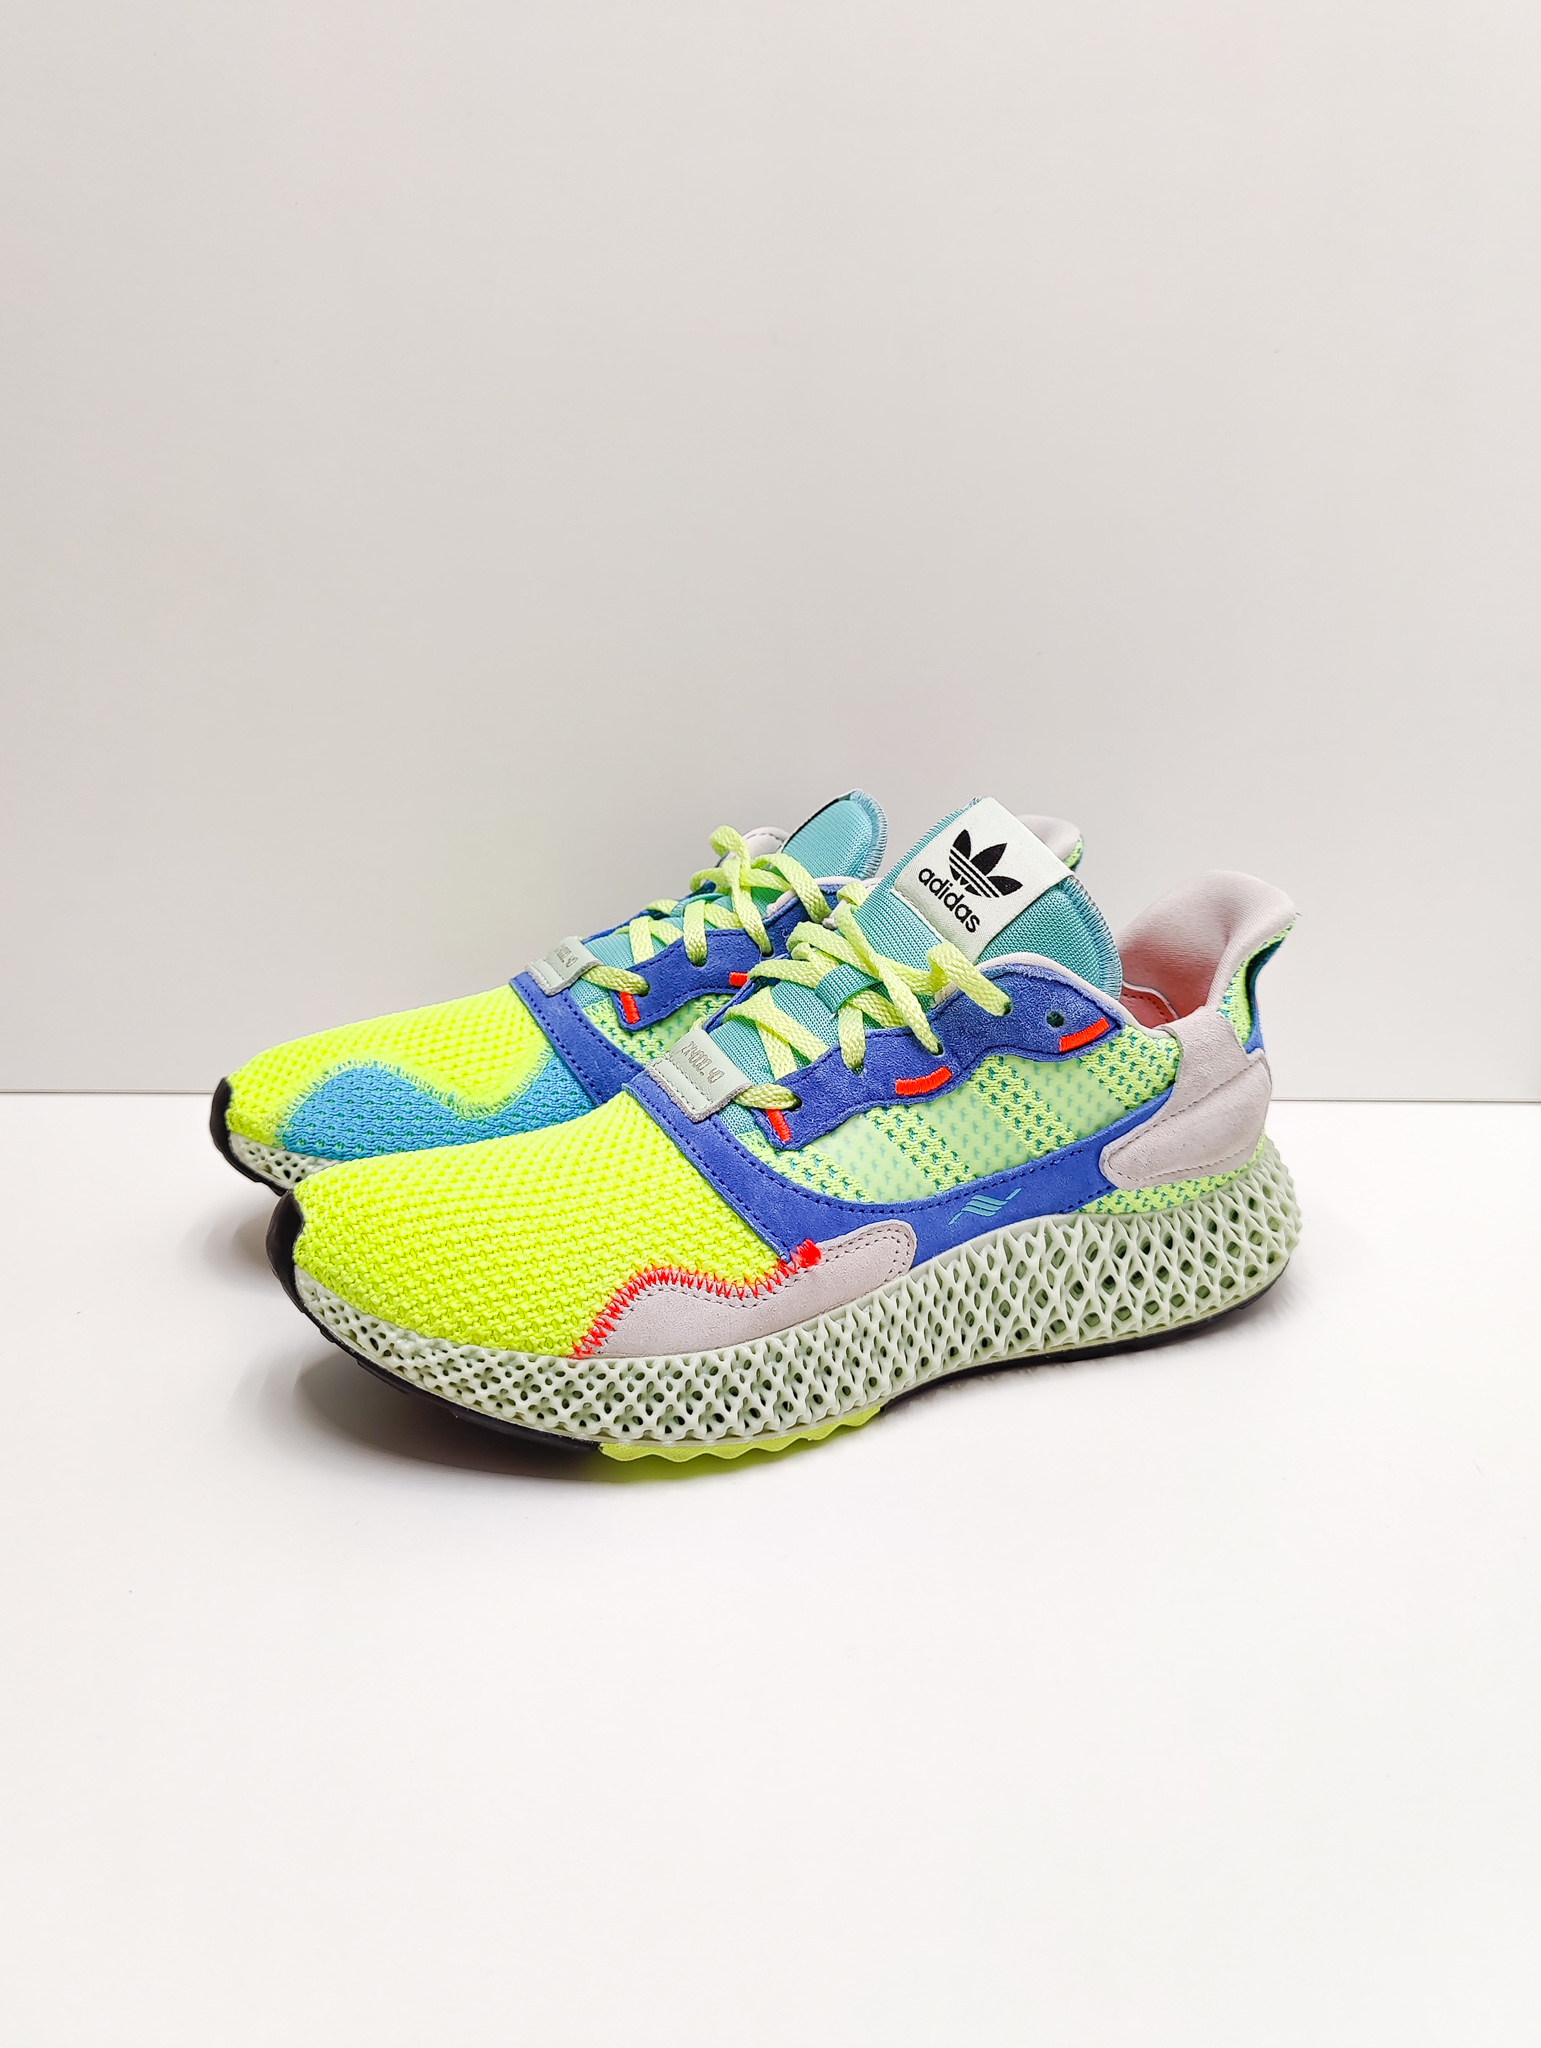 Adidas ZX4000 4D Easy Mint